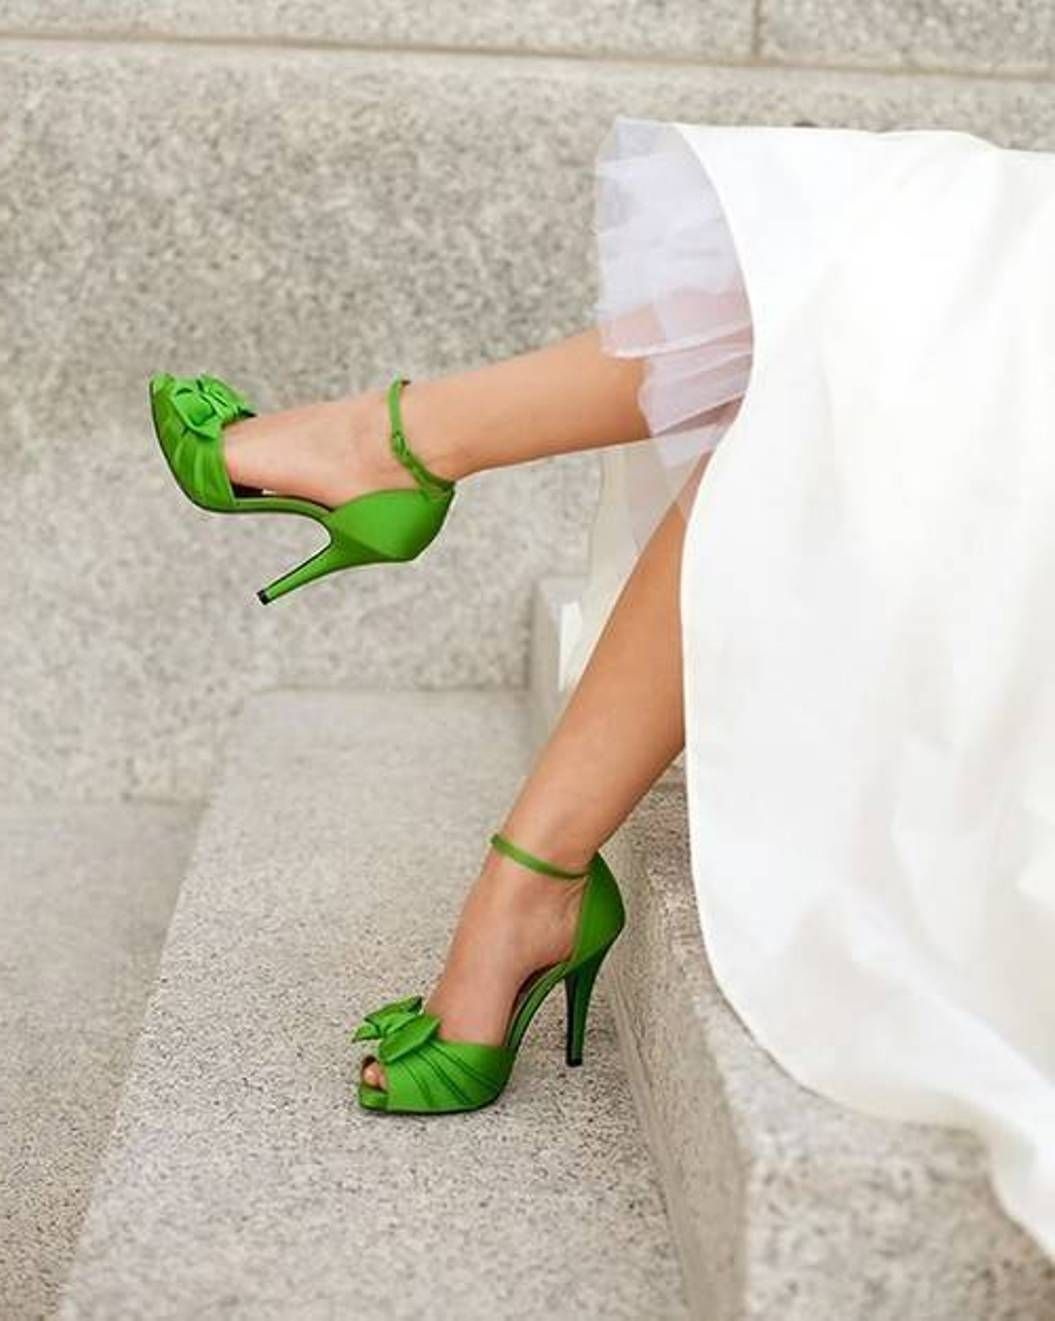 Colored wedding shoes for bridesmaid ernest weddingernest wedding colored wedding shoes for bridesmaid ernest weddingernest wedding junglespirit Choice Image